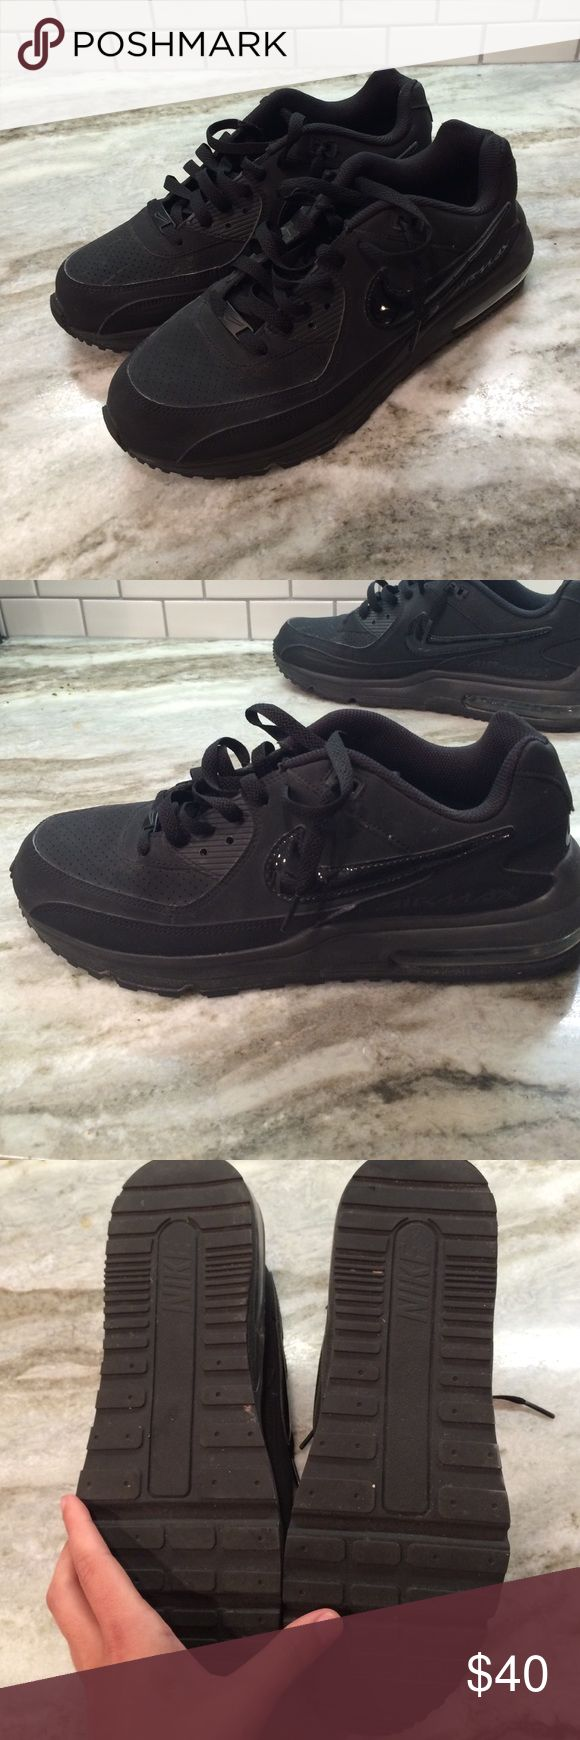 Nike air max ltd Barely worn, bought two years ago (2014), almost no signs of wear Nike Shoes Sneakers